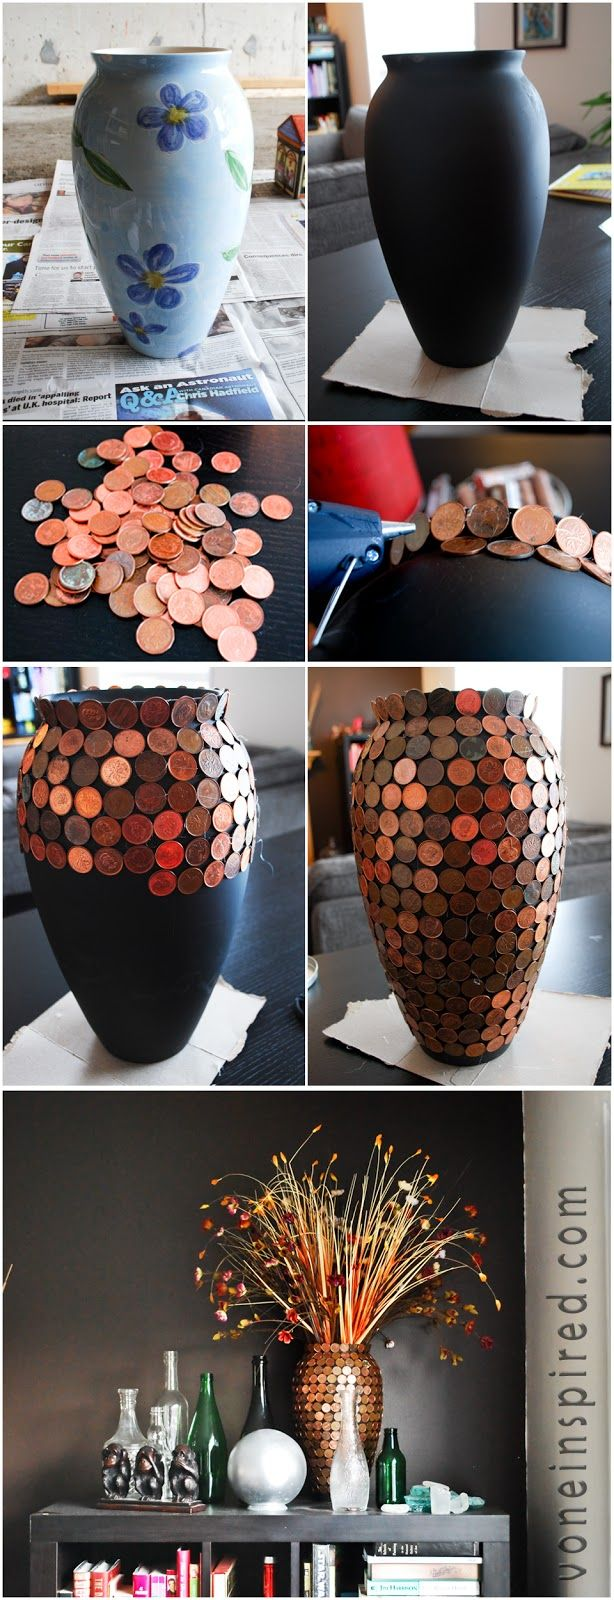 20 Affordable DIY Ideas You Can Do With Pennies